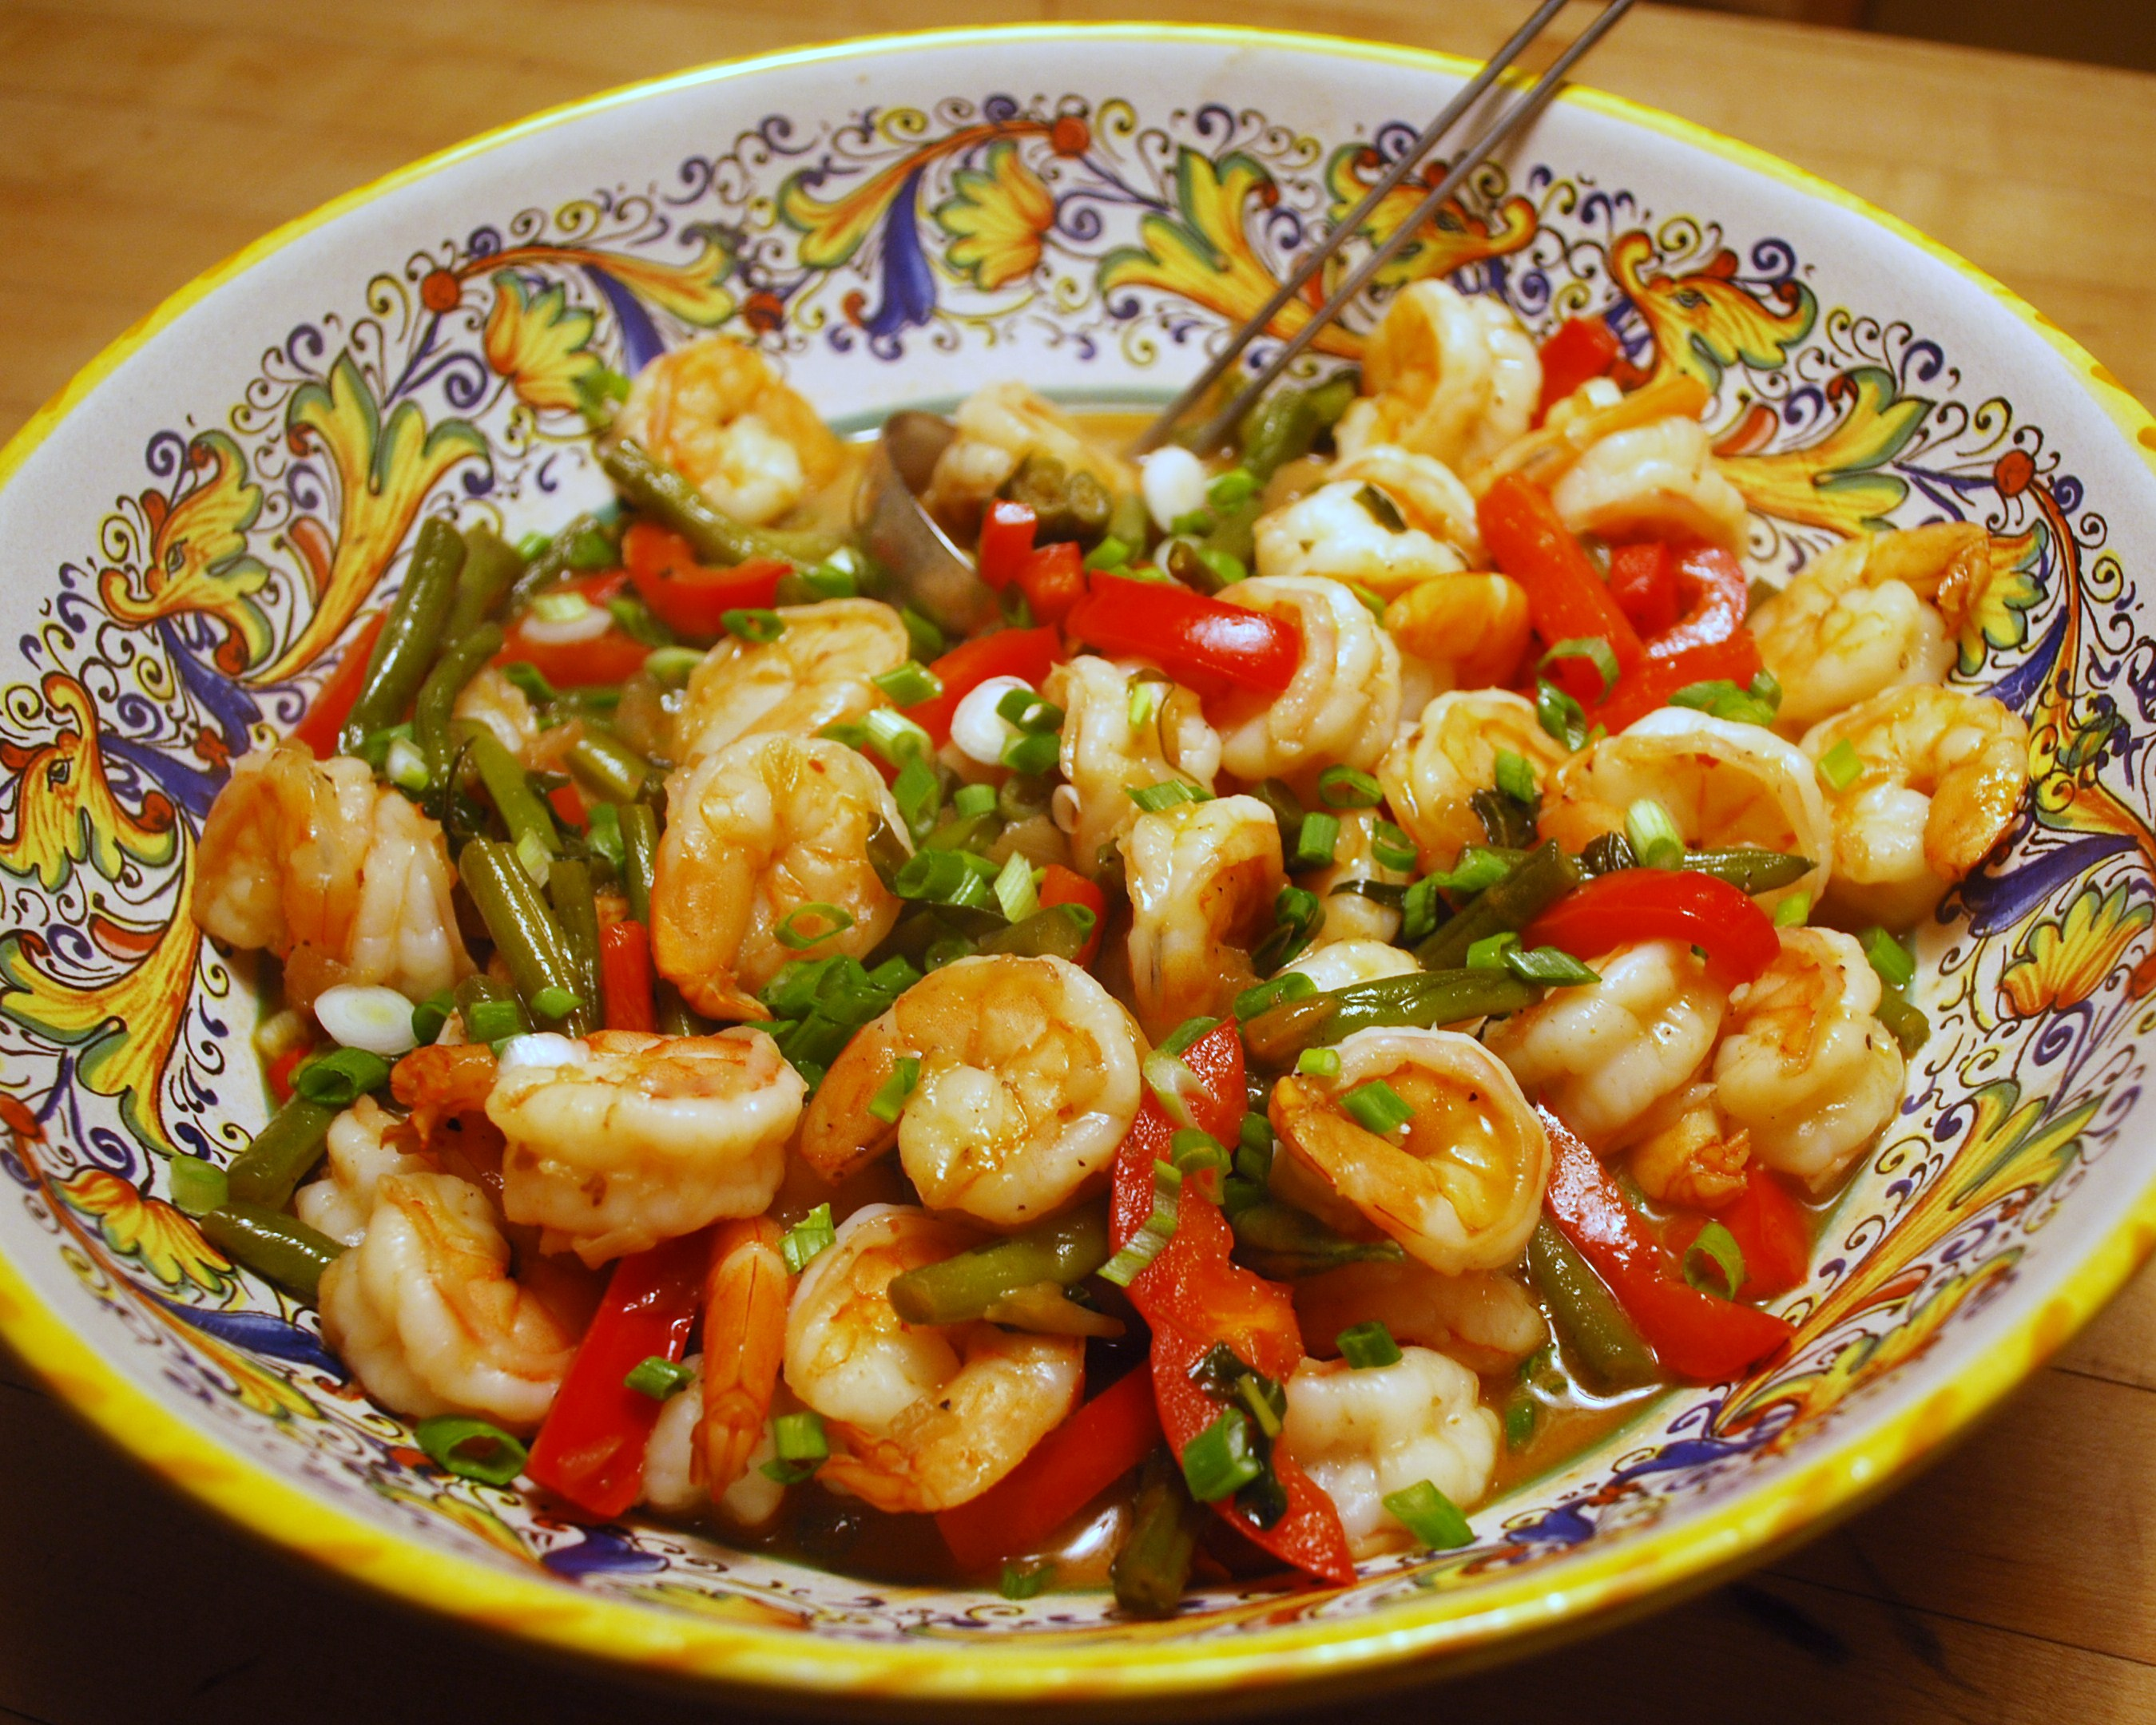 Are You in a Culinary Rut? & Thai Curried Shrimp and Green Beans